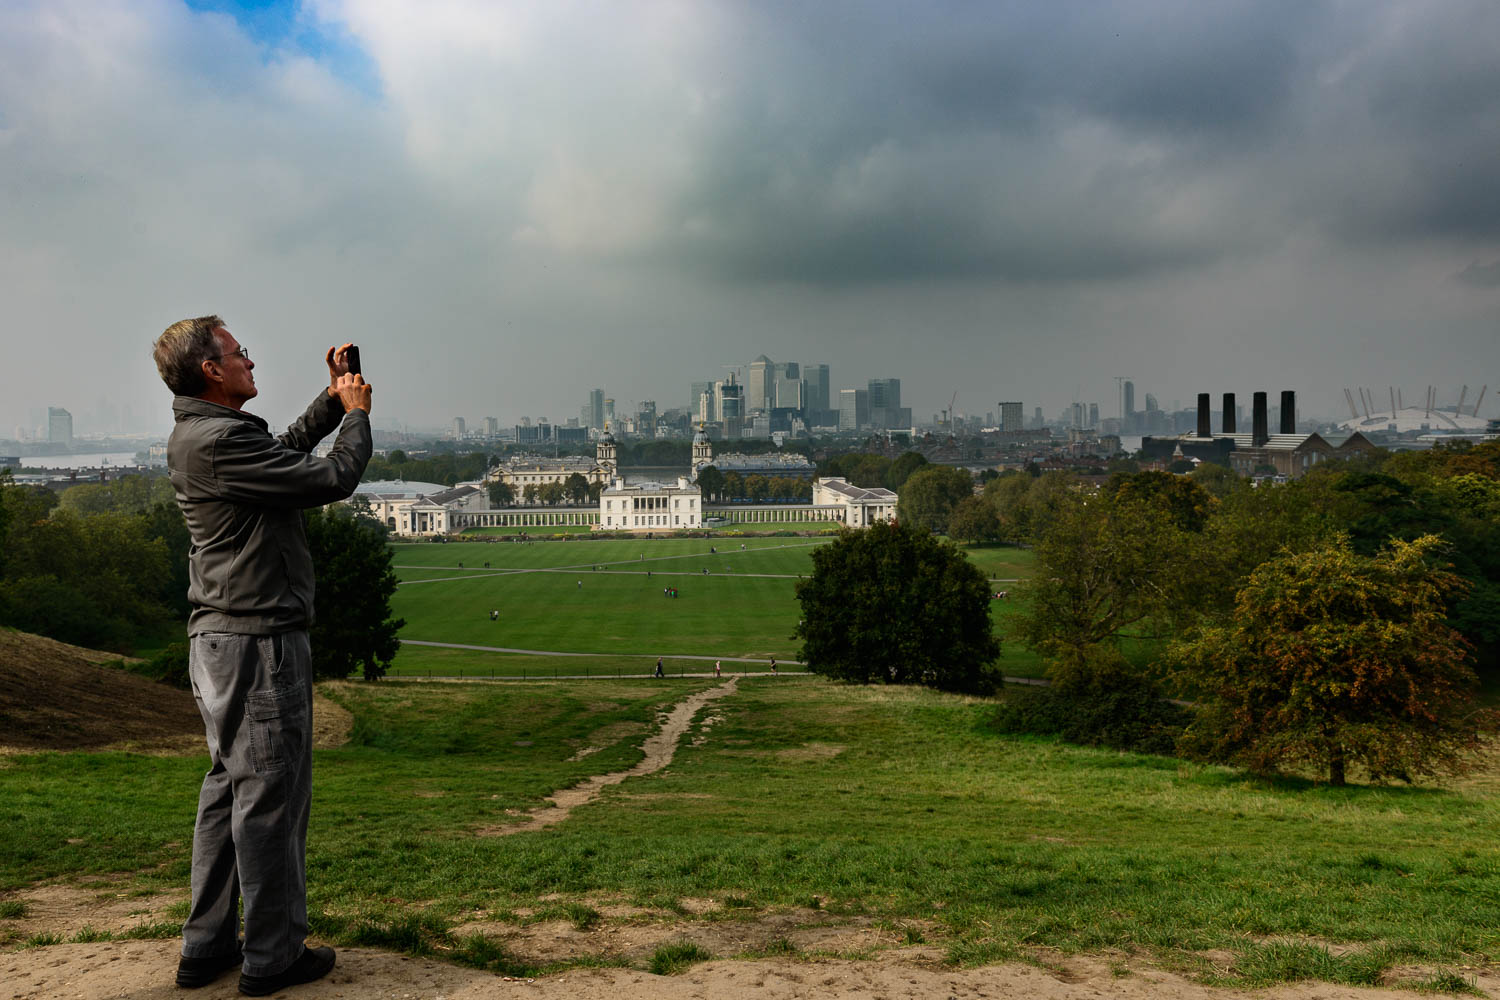 Idiot with iPhone far more important than 100 peopel behind the barriier taking their pictures at Greenwich Observatory